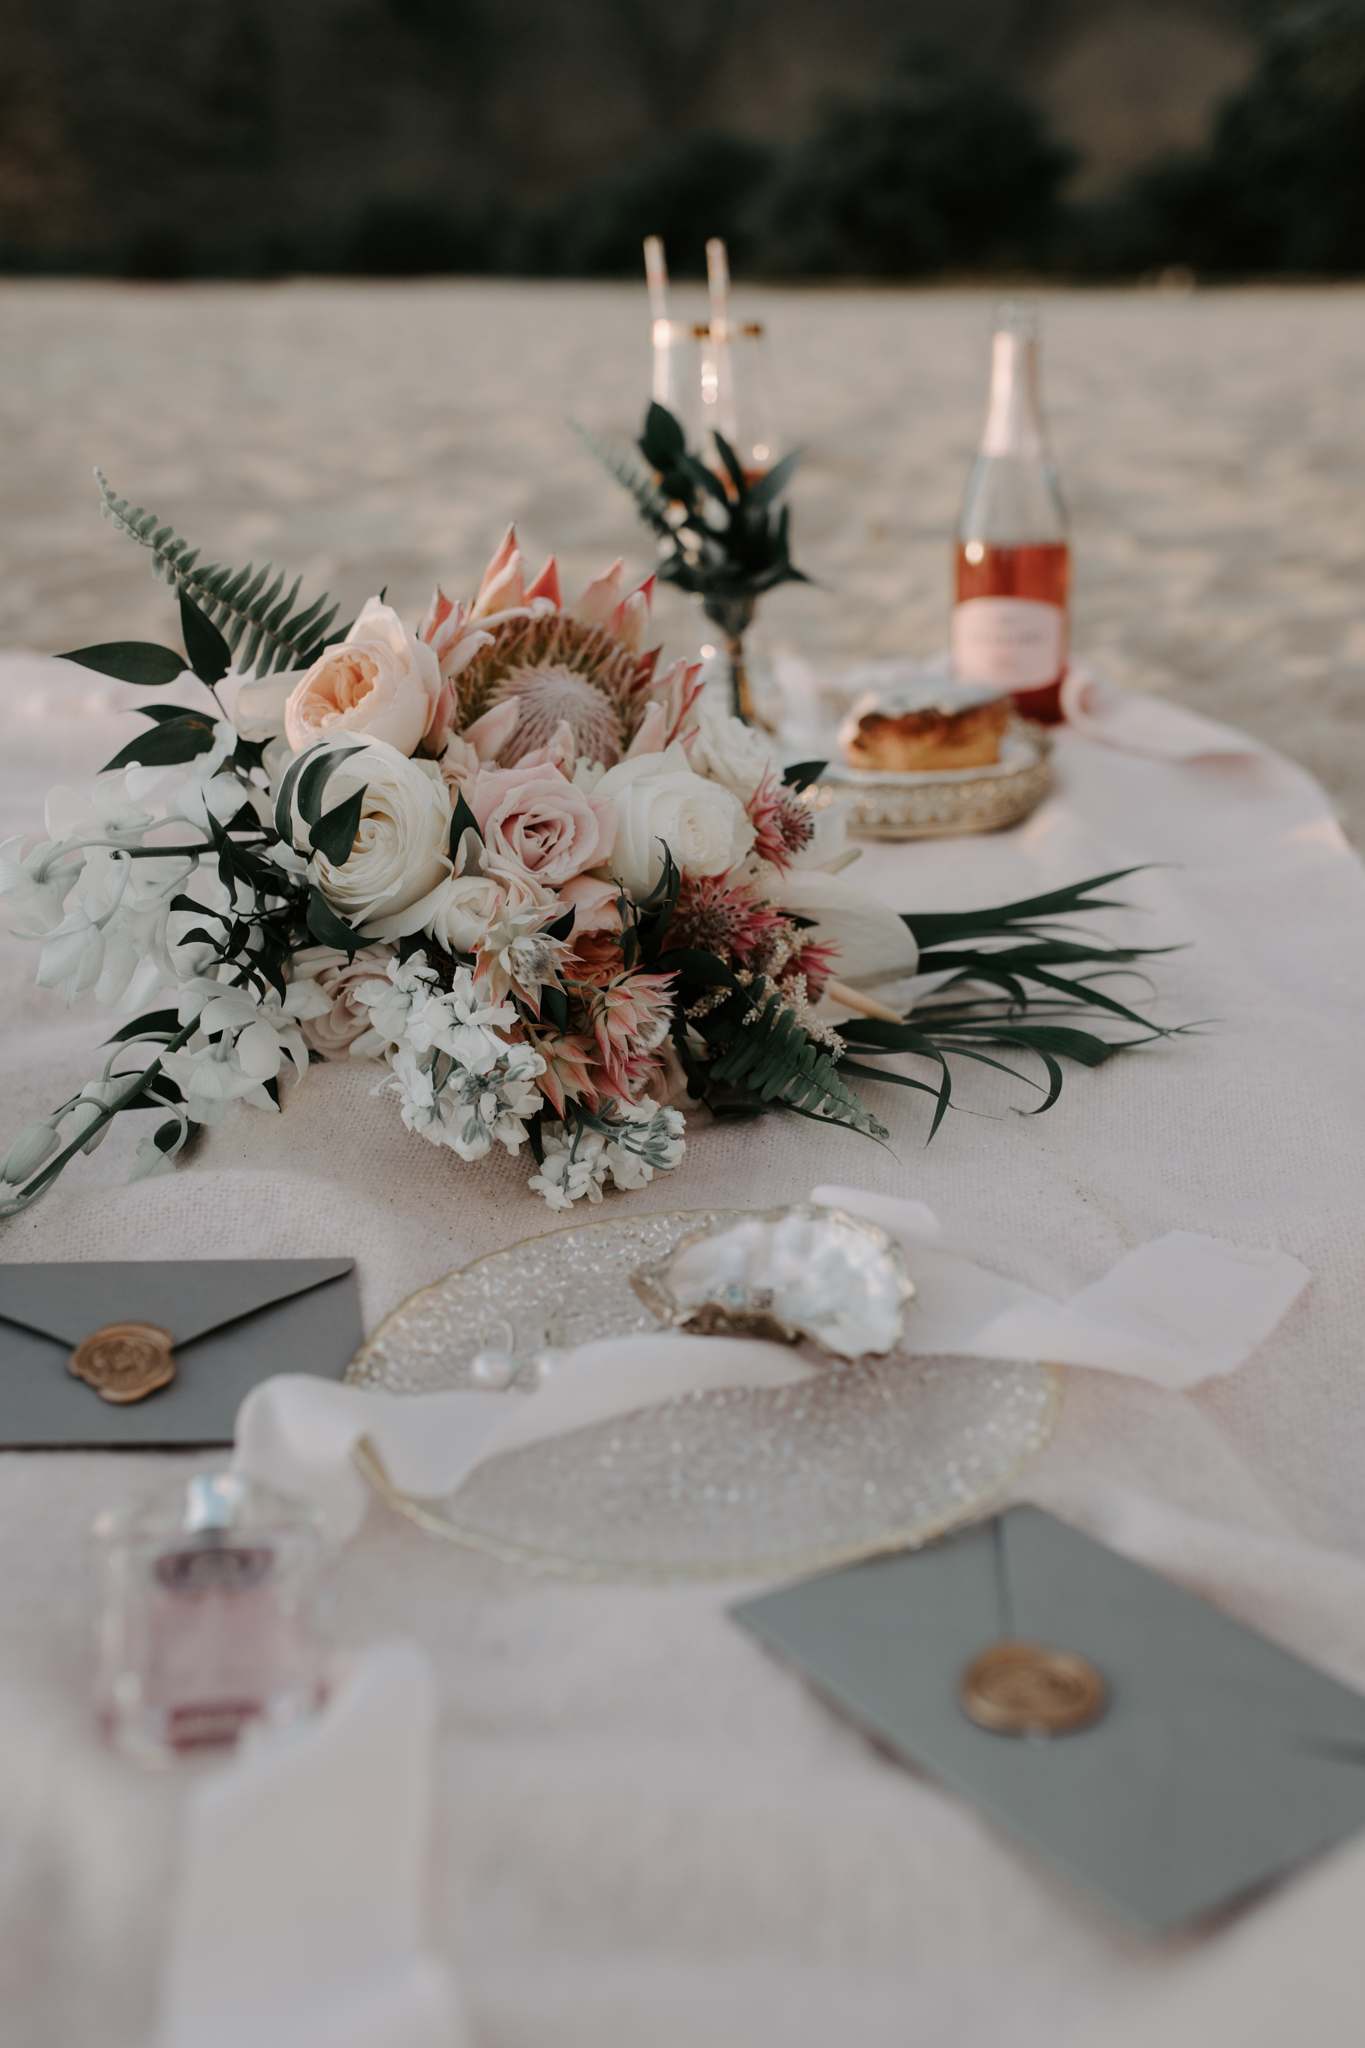 Hawaii Beach Picnic Photoshoot by Hawaii Wedding Photographer Desiree Leilani